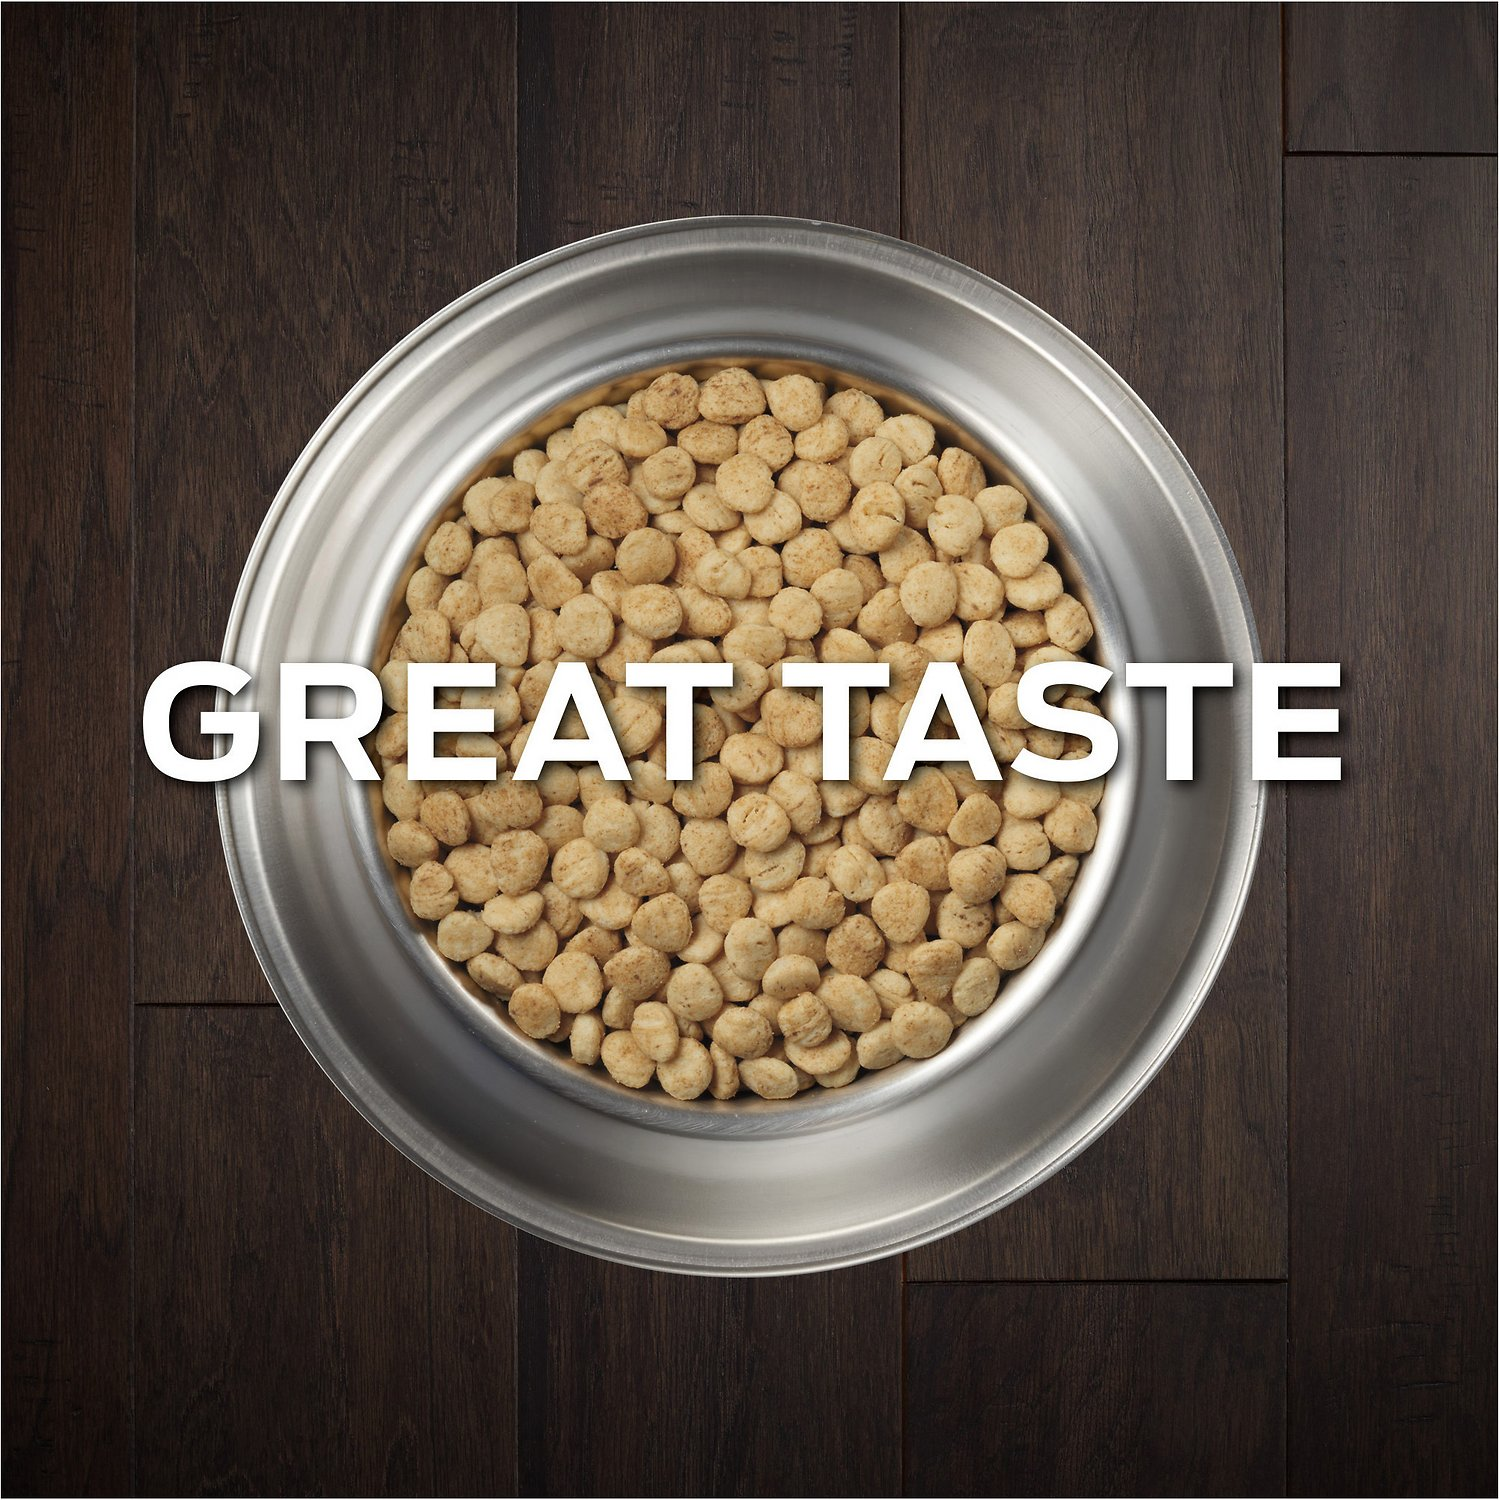 Purina Prescription Dog Food Allergy